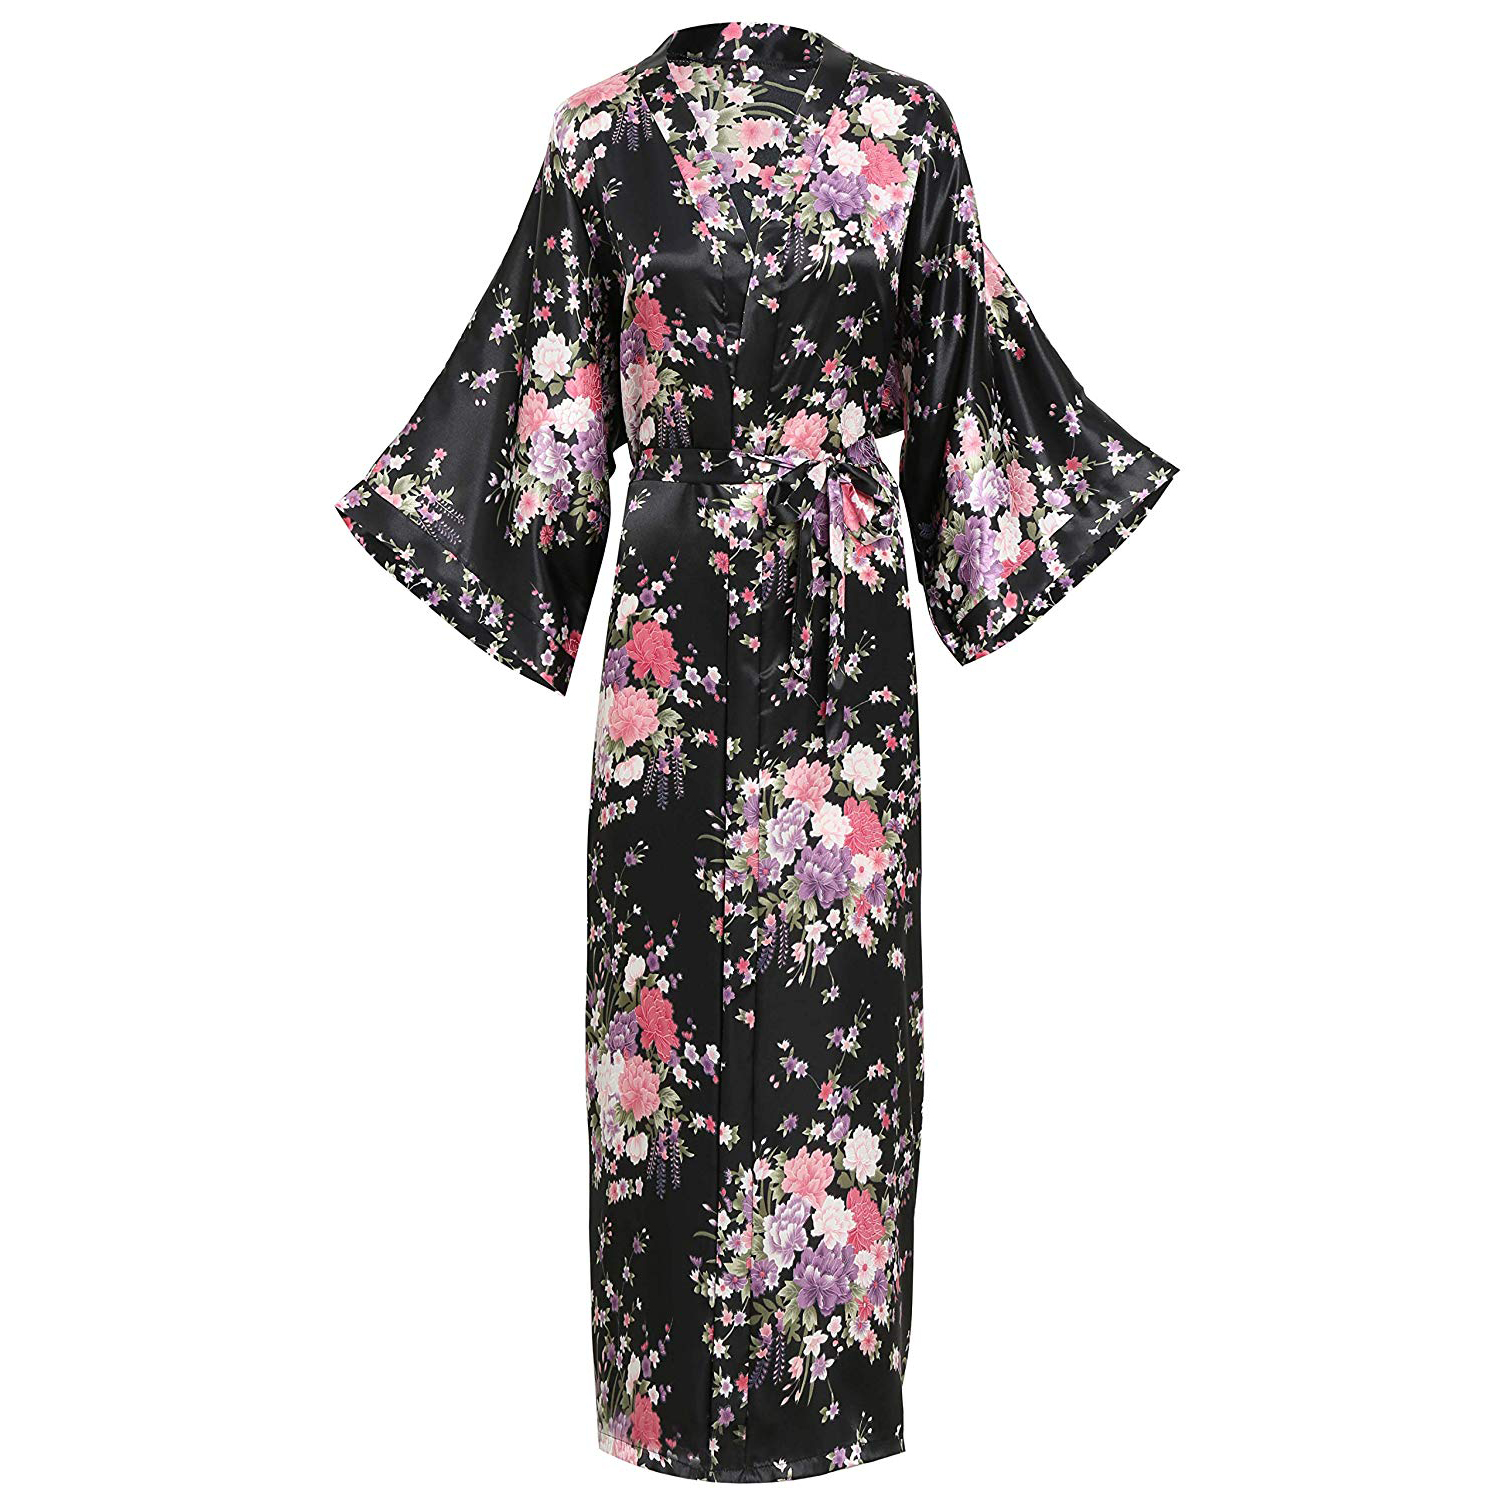 Elegant Women Long Kimon Robe Exquisite Print Flower Bathrobe Gown Intimate Lingerie Casual Satin Soft Wedding Robe Pajamas